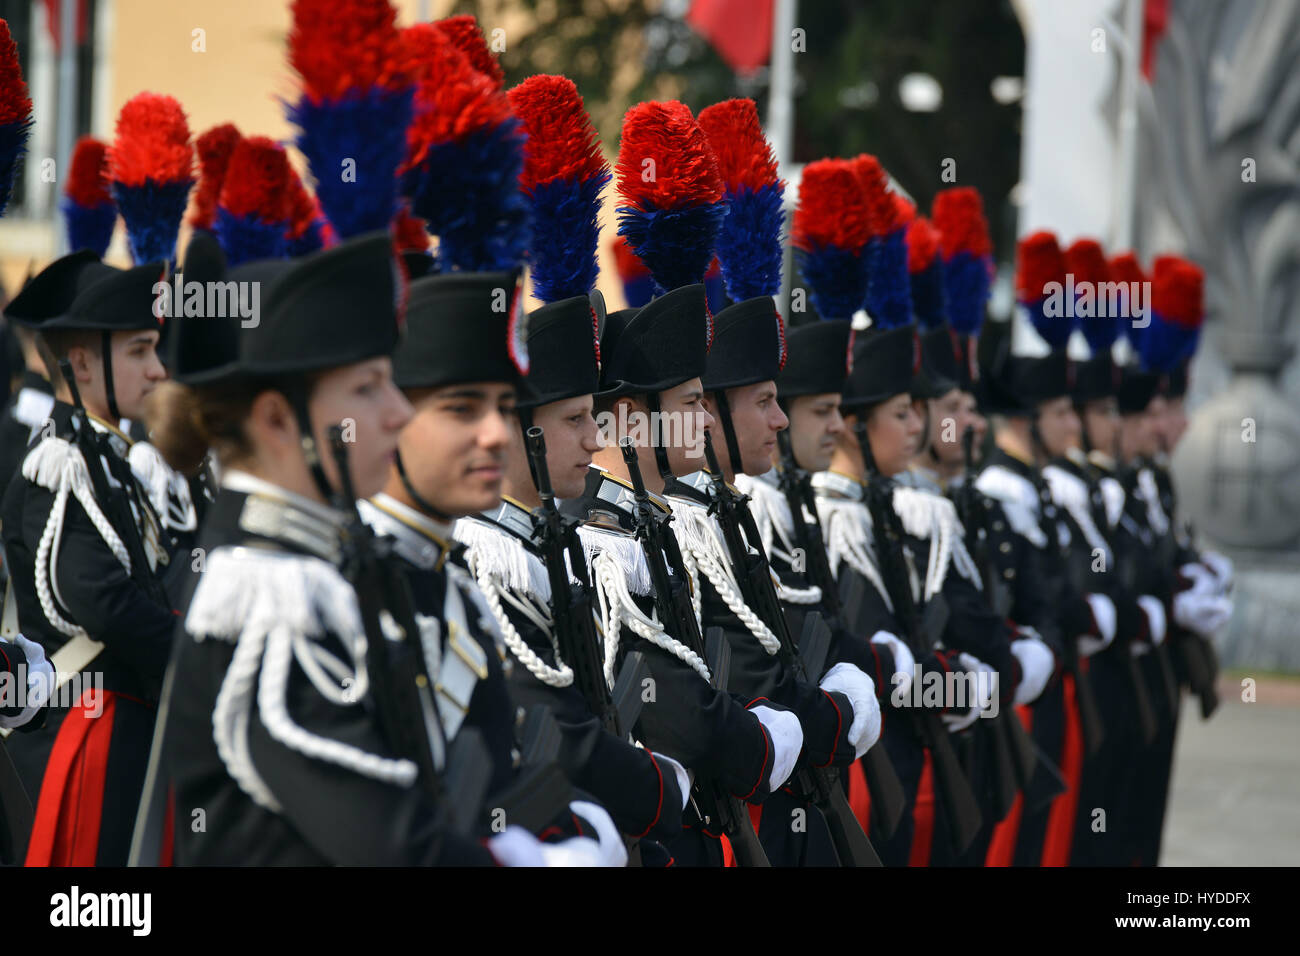 87a779aab4a Carabinieri police in dress uniforms stand at attention at the Center of  Excellence for Stability Police Units April 1